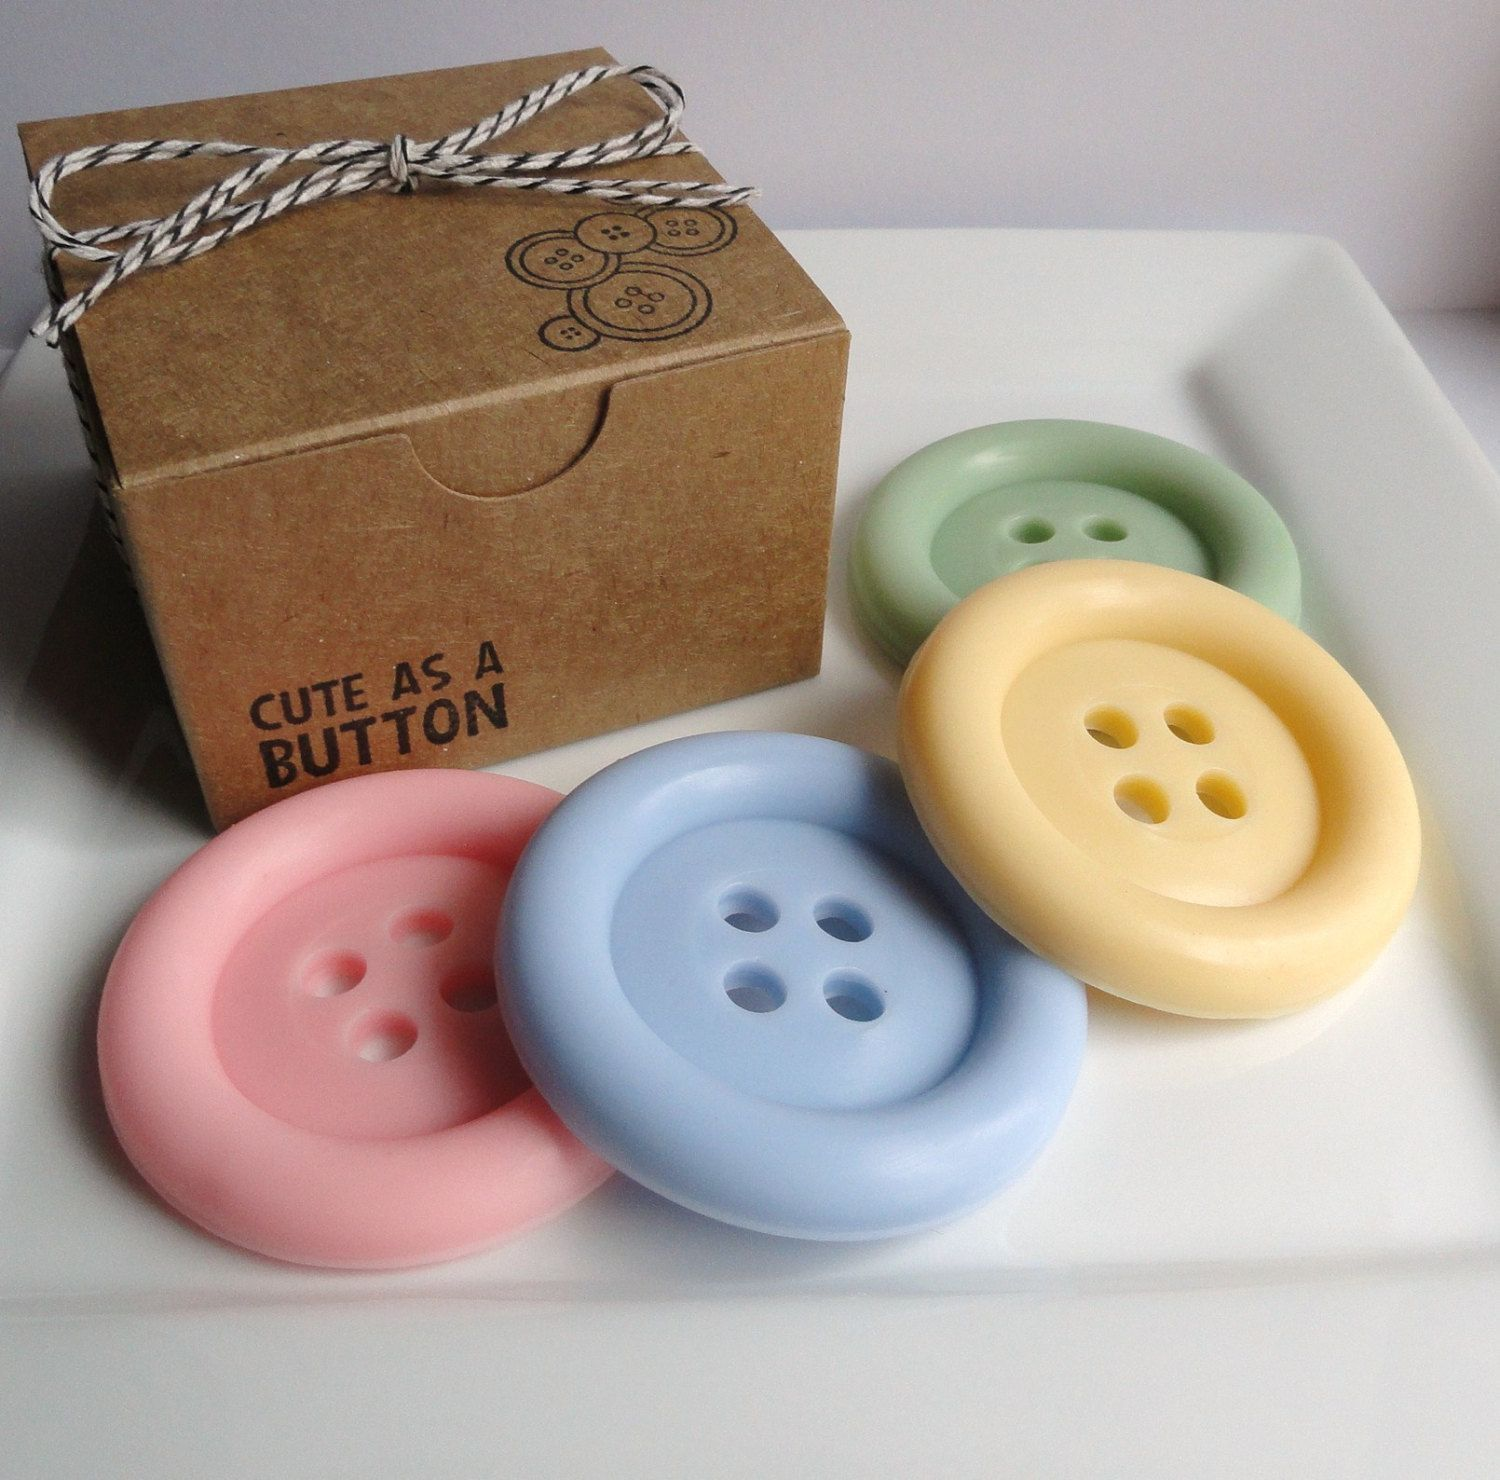 ETSY Products Cute as a Button Soap Set - Goat Milk Soap , gift for Her, Shaped soap, baby shower favors, soap favors, kids soap, mothers day, party favorCute as a Button Soap Set - Goat Milk Soap , gift for Her, Shaped soap, baby shower favors, soap favors, kids soap, mothers day, party favor